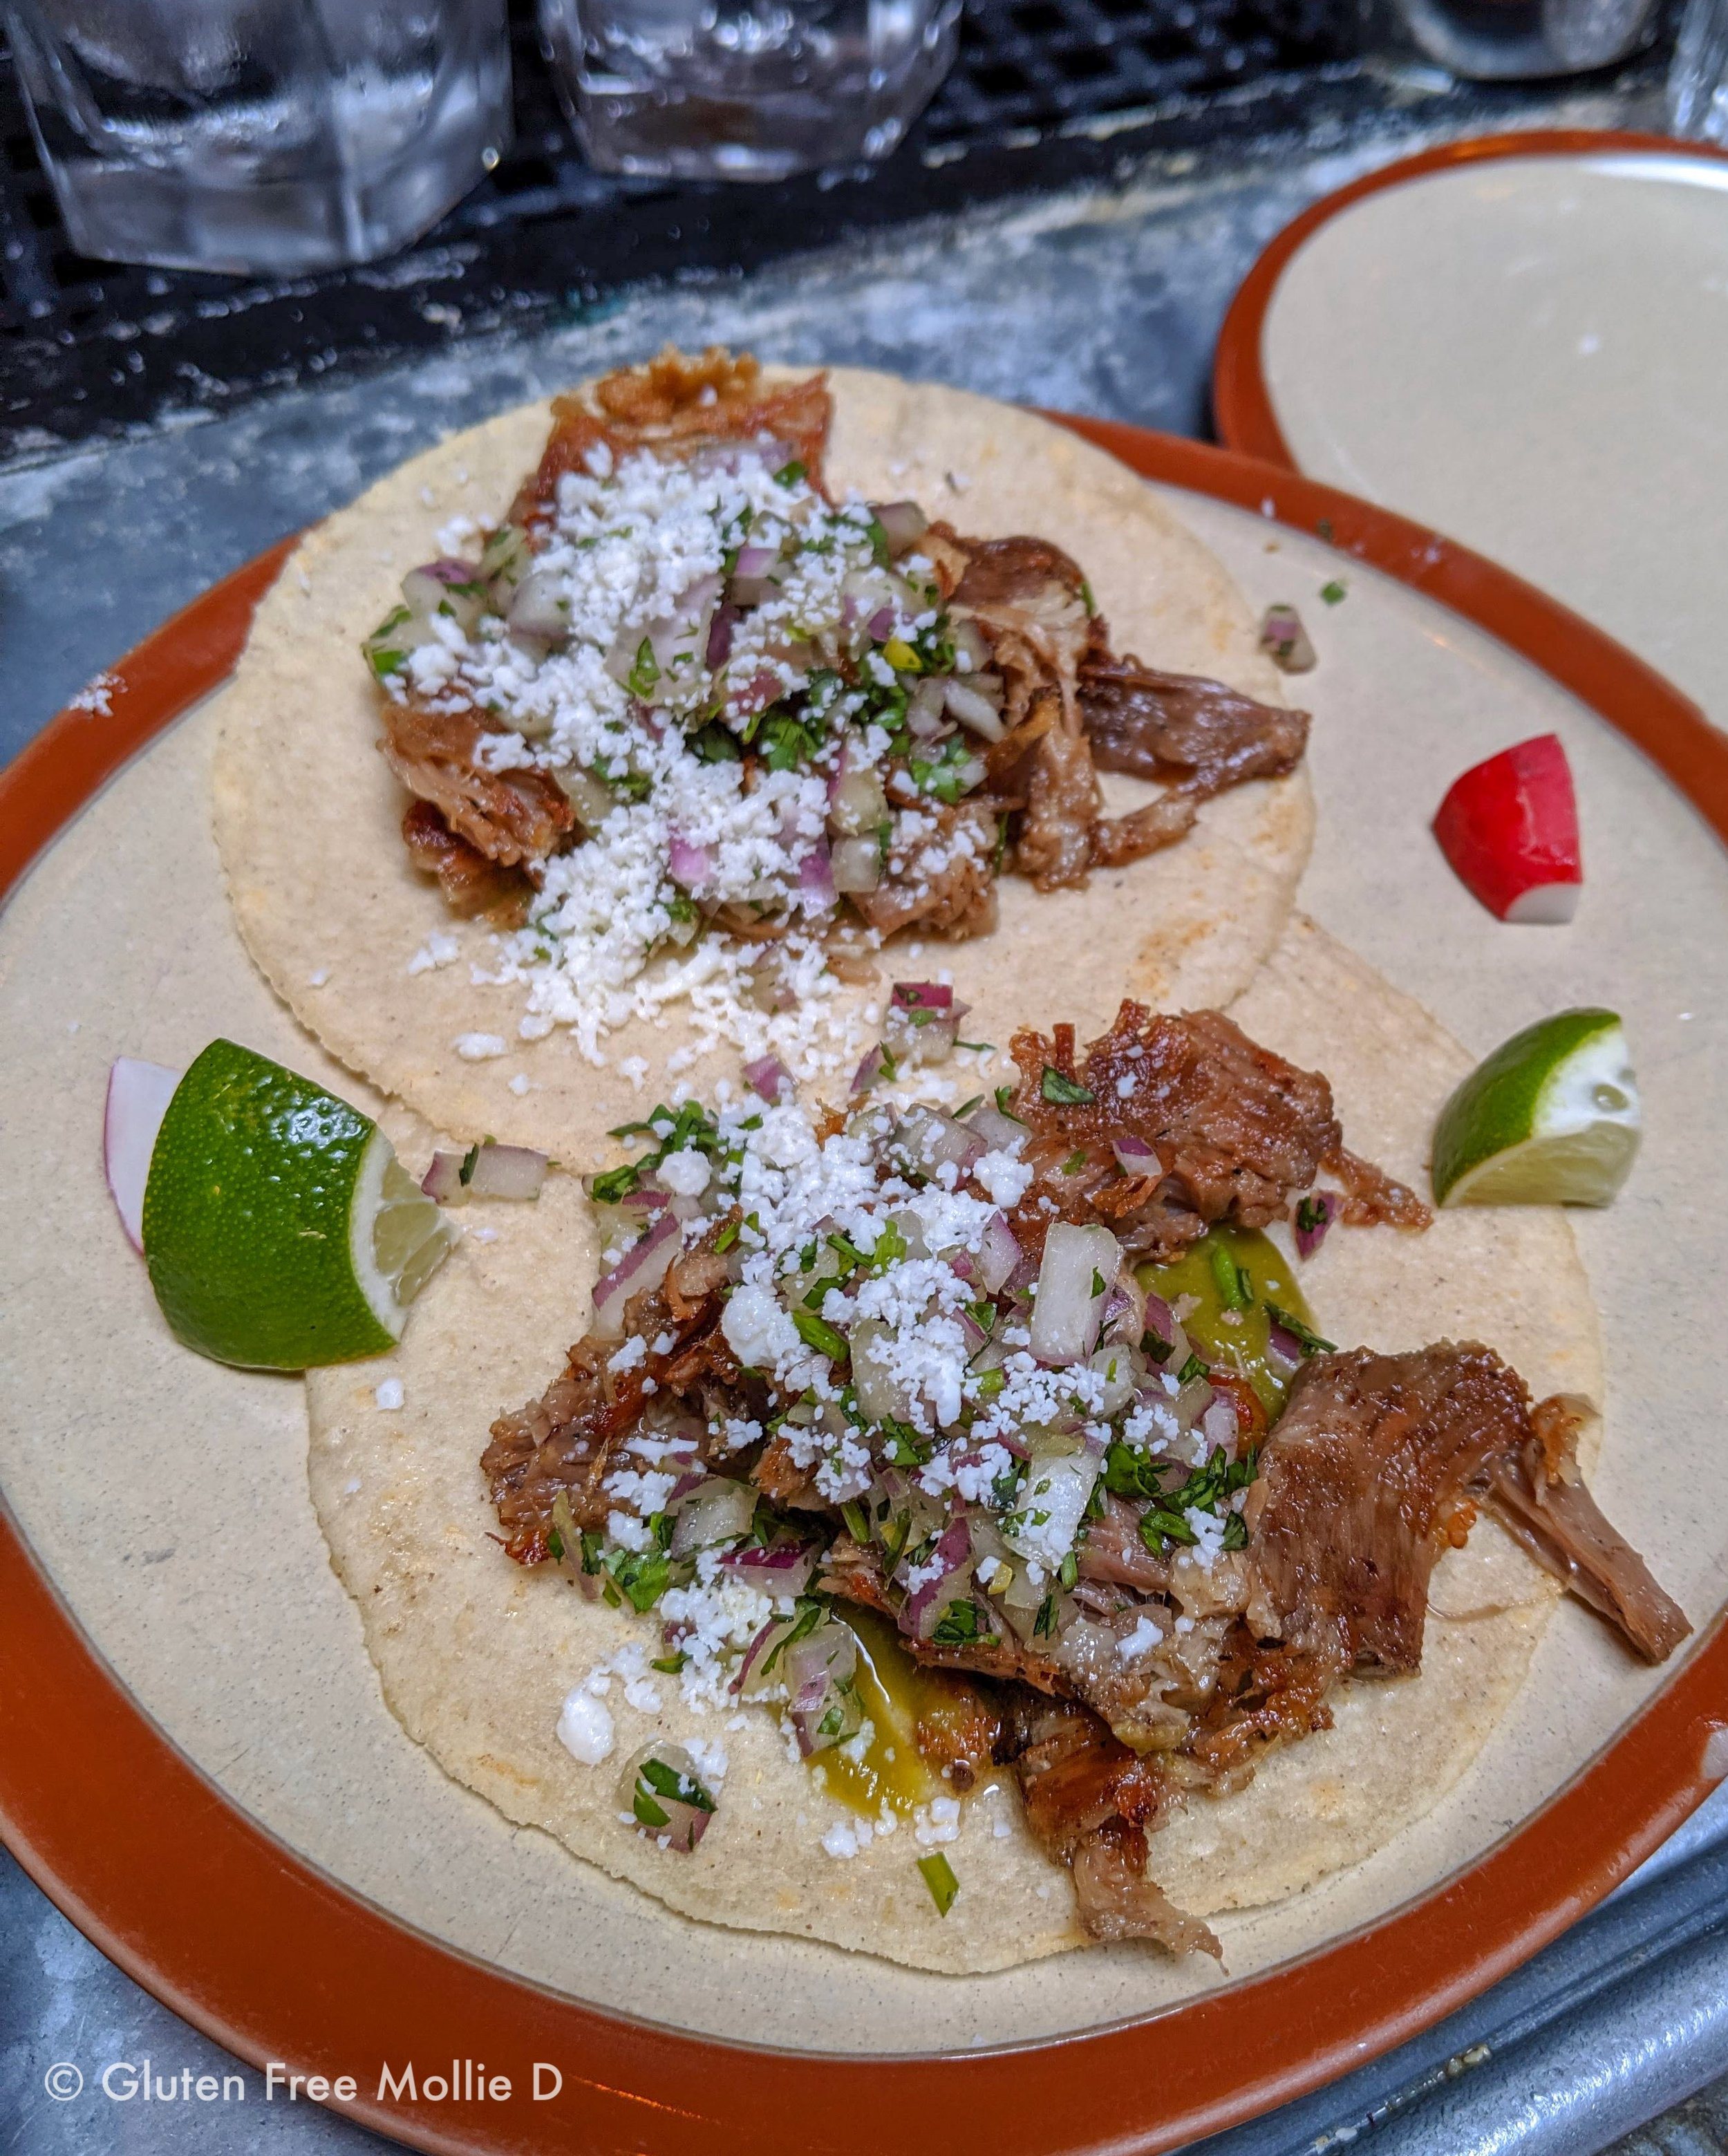 The beloved carnitas.